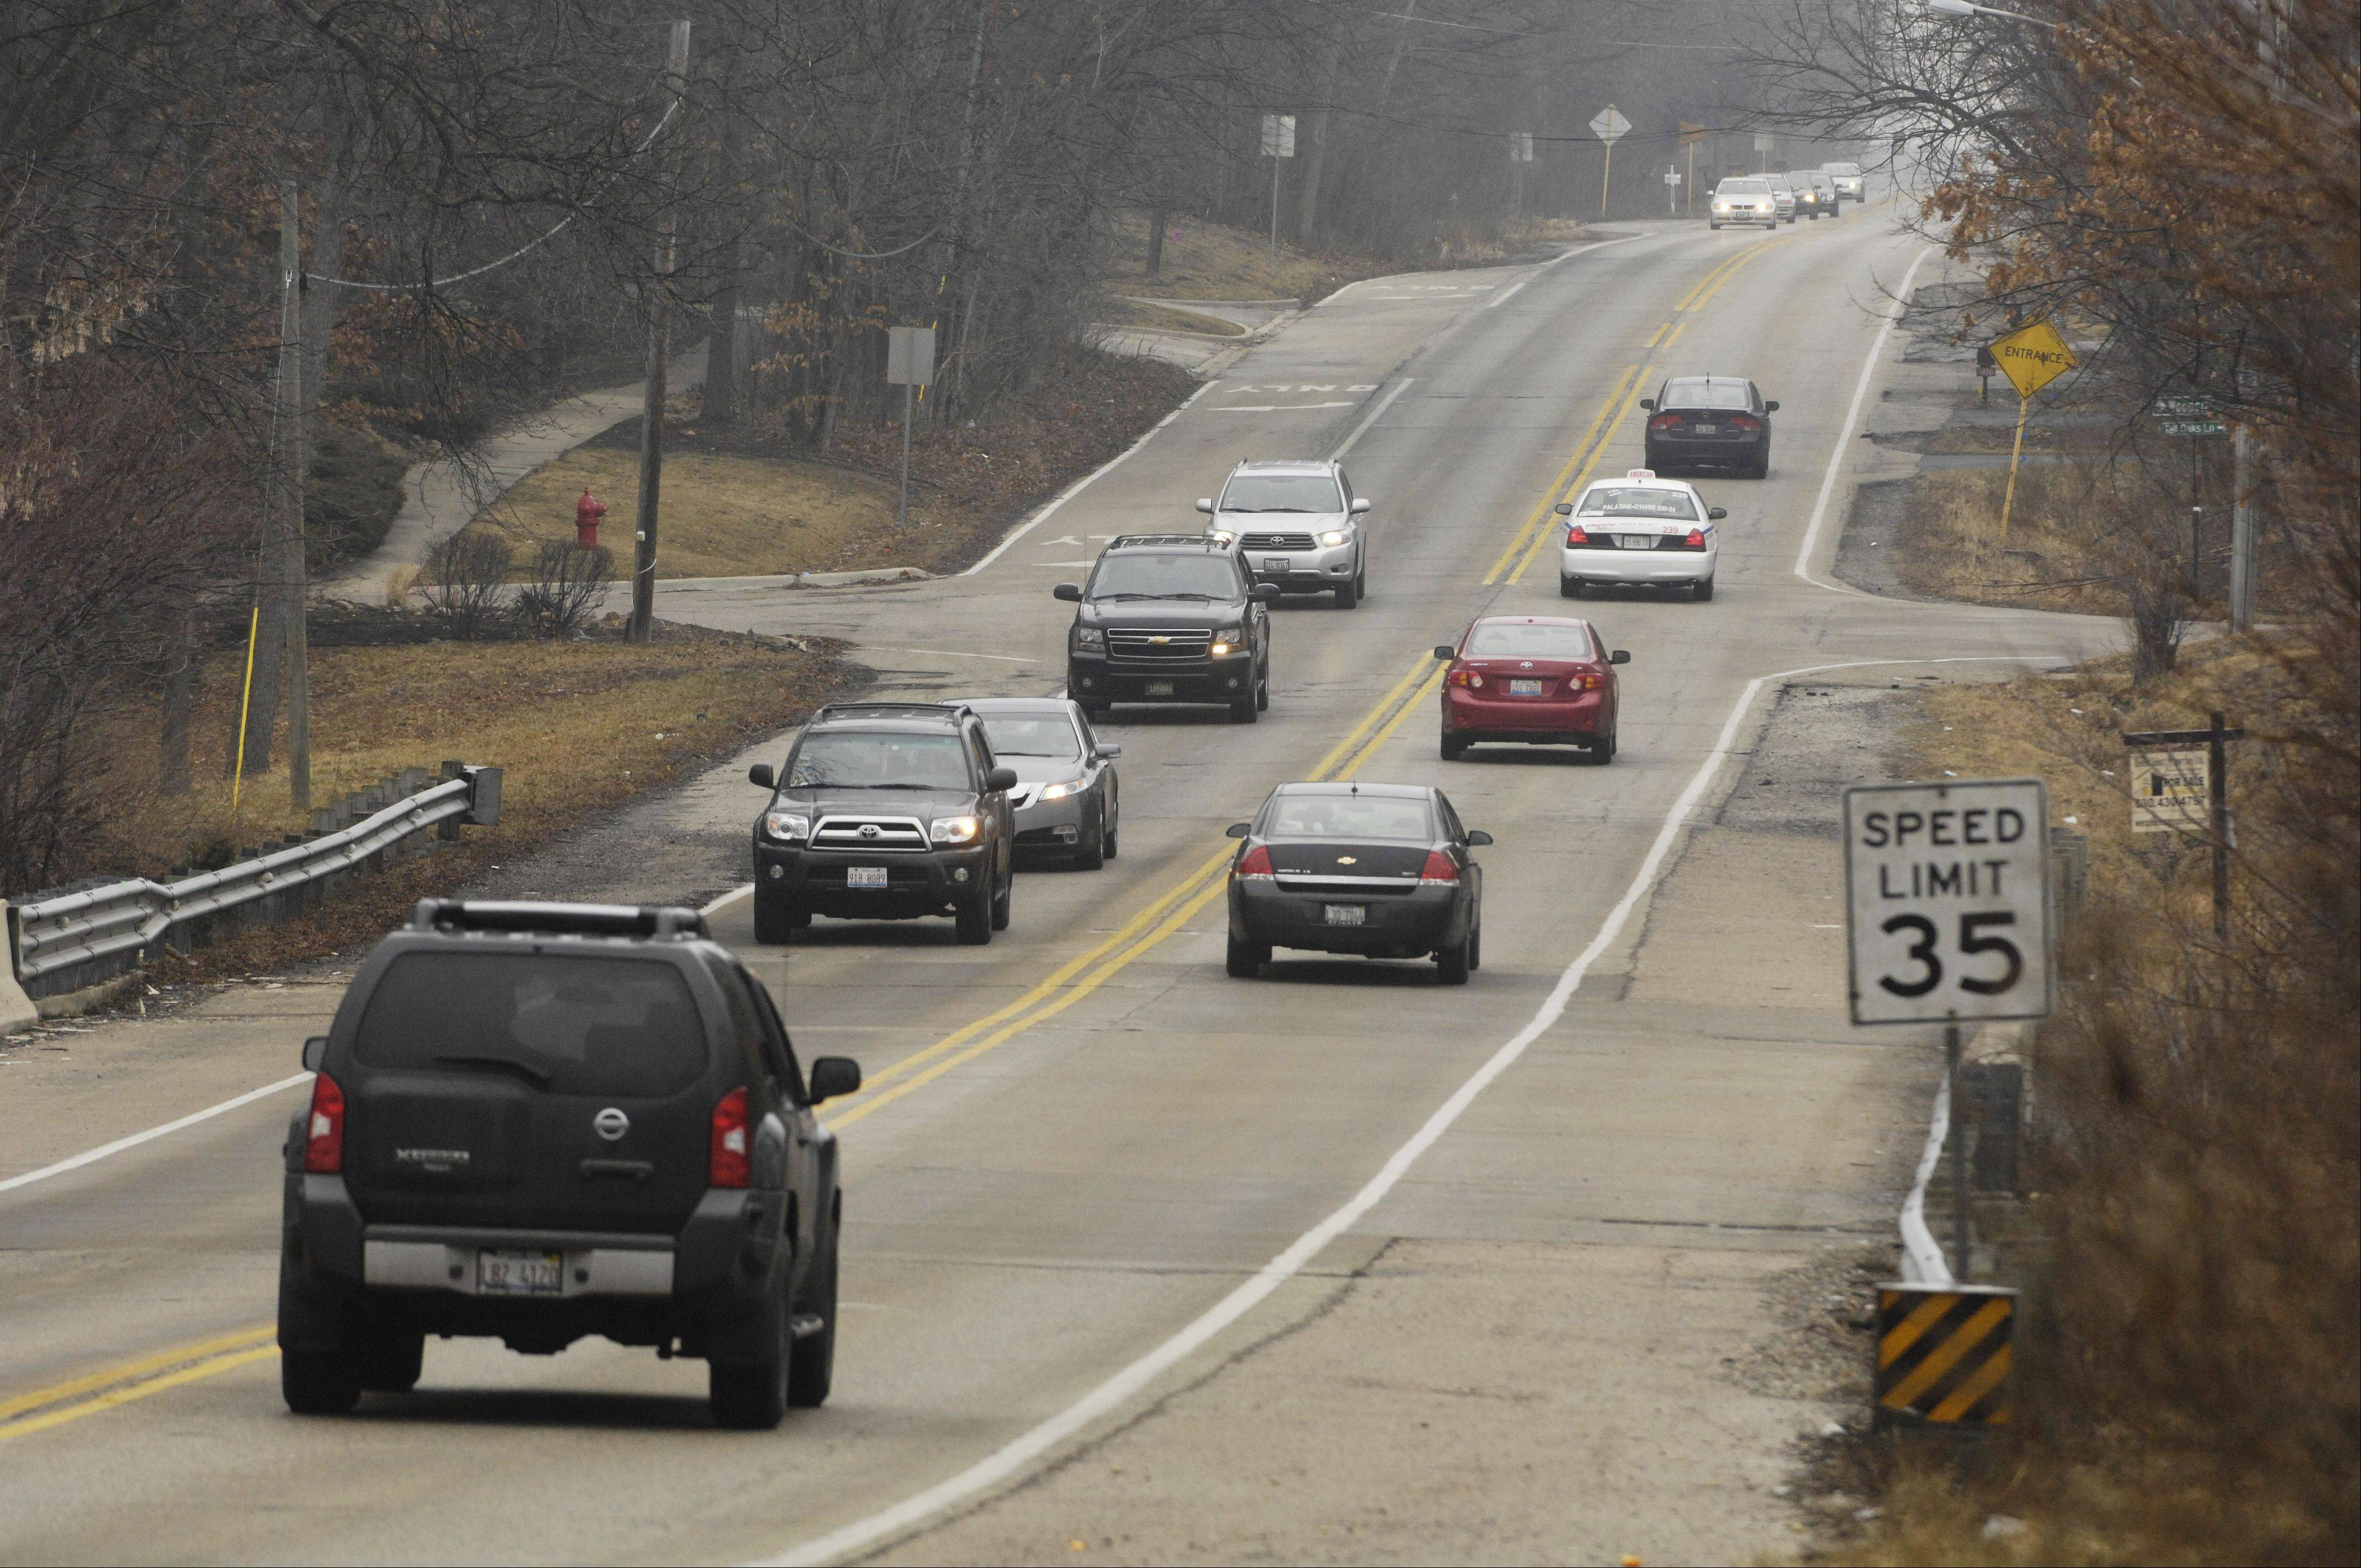 Rolling Meadows to look into 3-lane Meacham Road